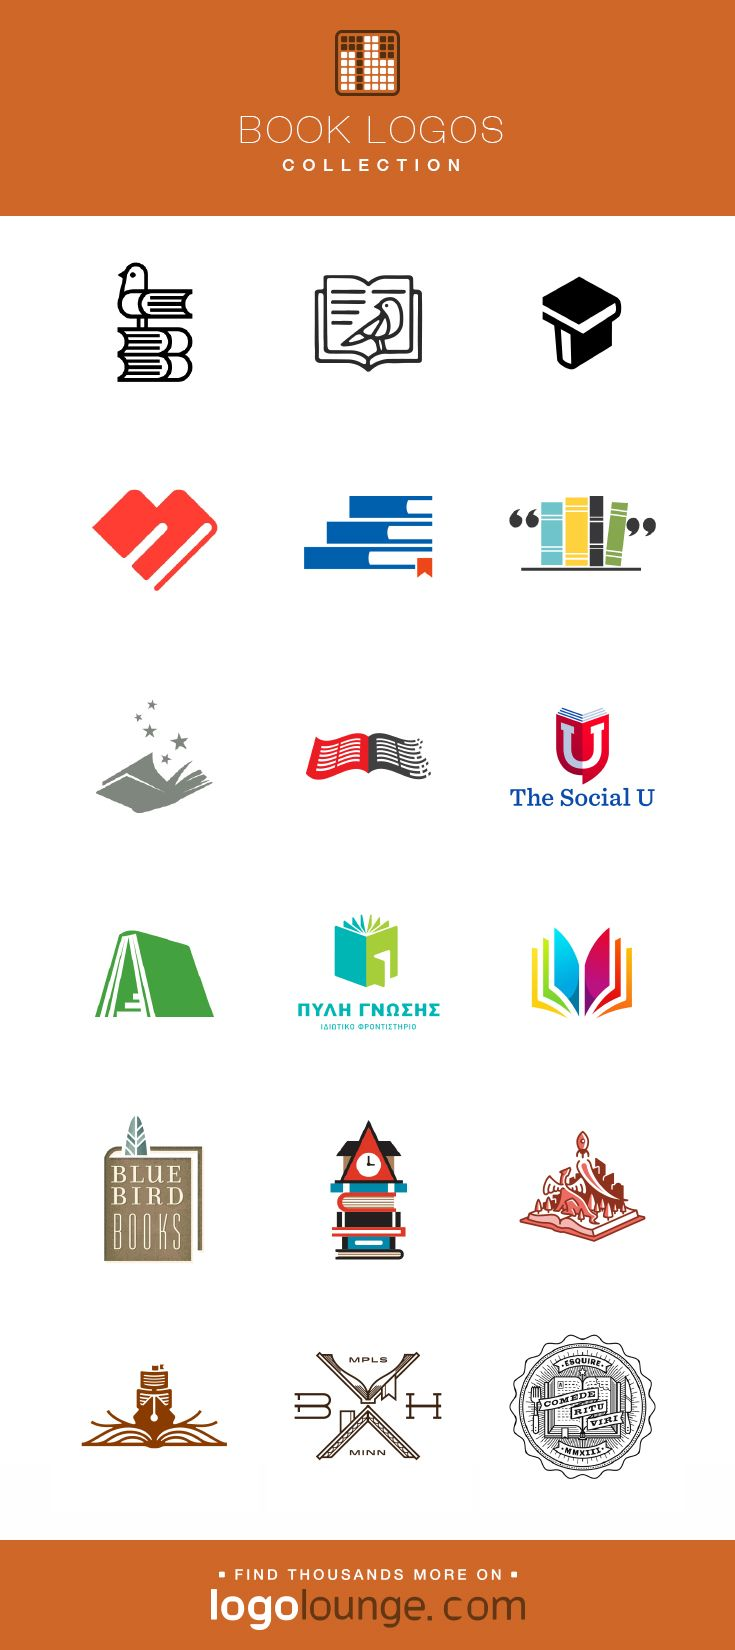 Logo Collection Book Vector Logo Designs Pages Paper Education Cover Spine Words Logo Books Education Logo Design Book Logo Logo Collection